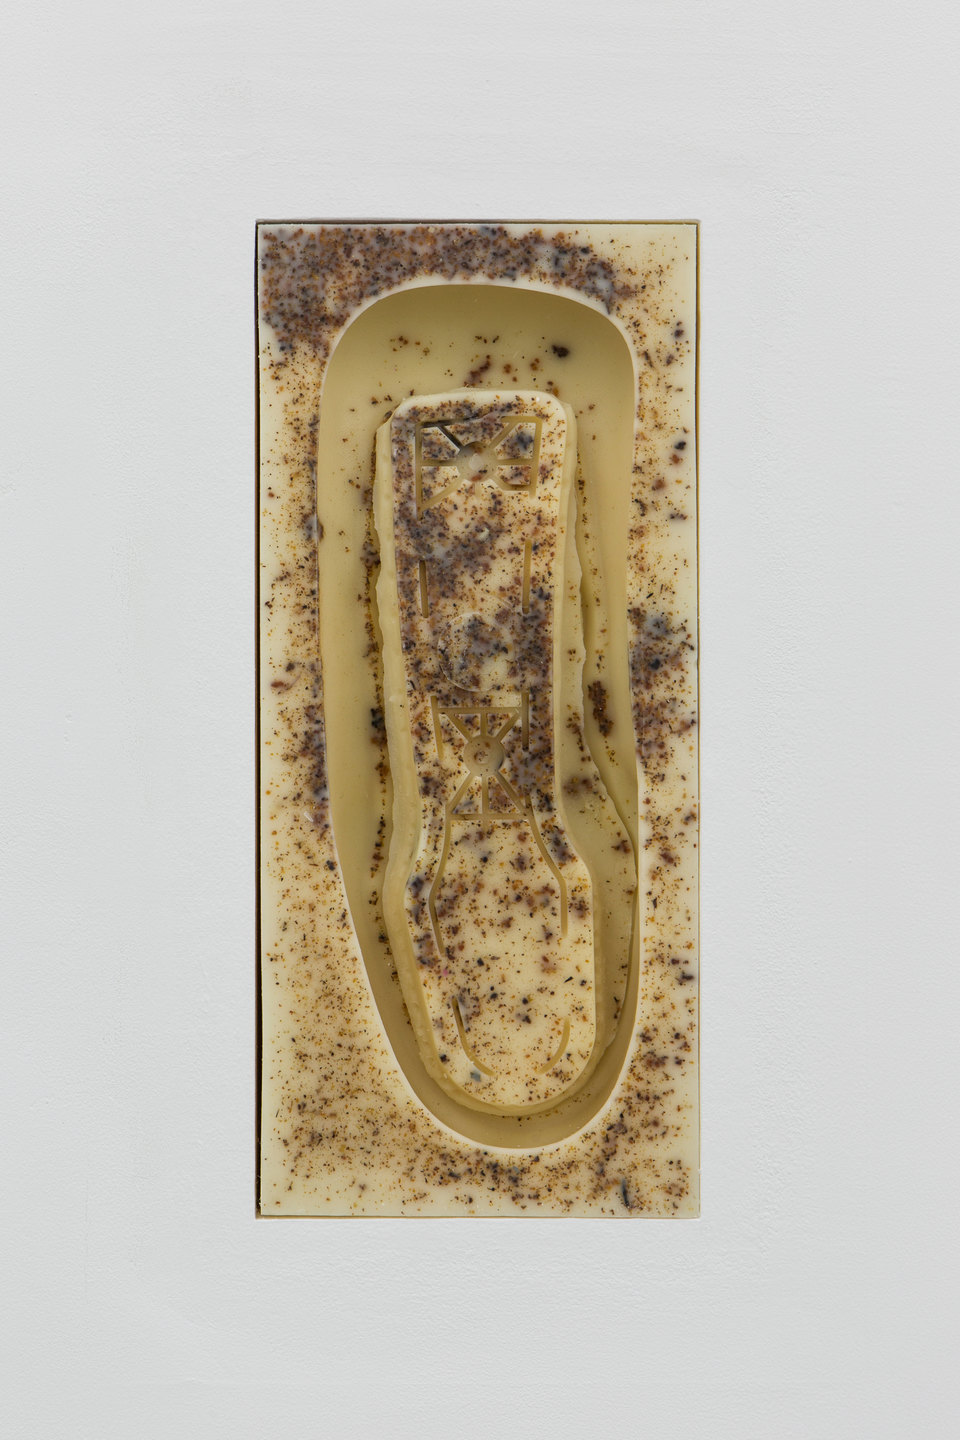 Patricia L. Boyd, 'Aeron Armrest I-XII', 2019, (Detail) Used restaurant grease, wax, damar resin 31.1 x 13.7cm each, Cell Project Space